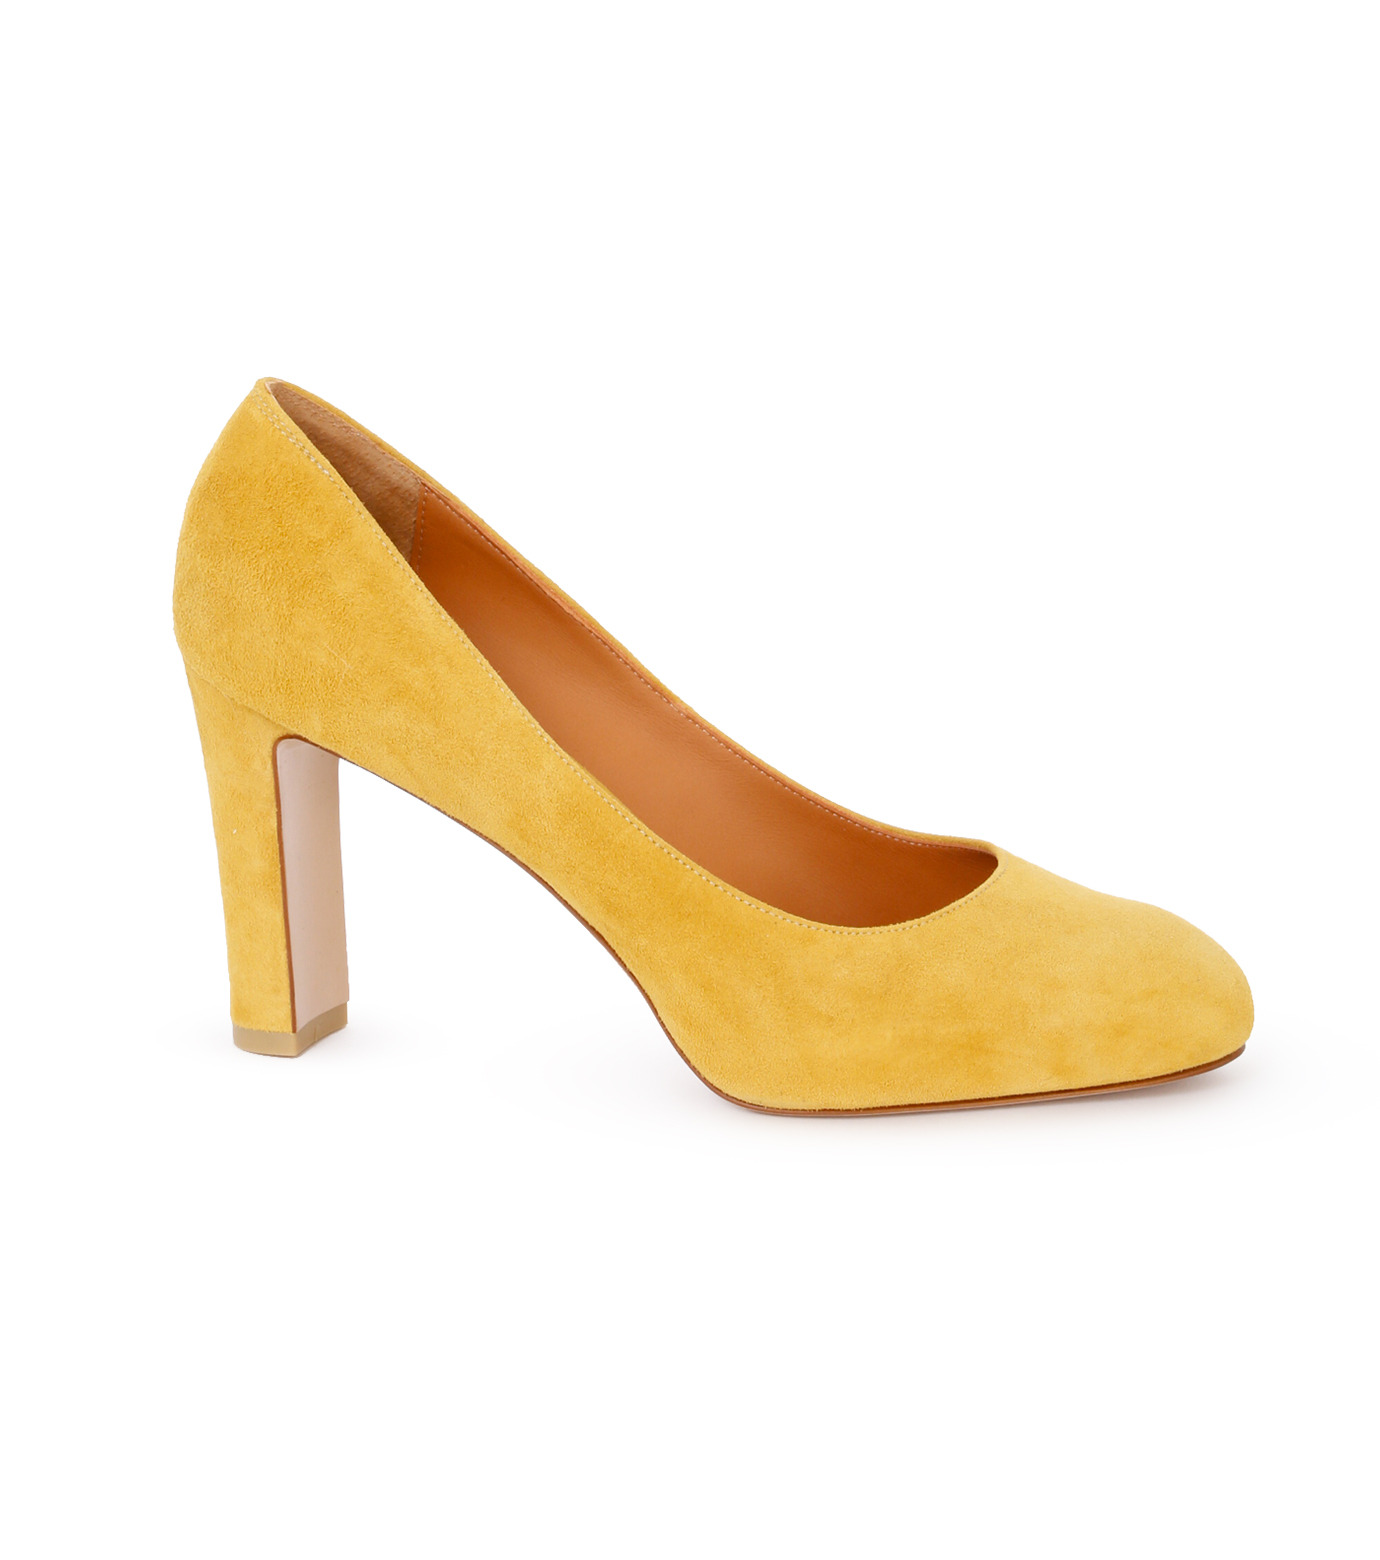 PIPPICHIC(ピッピシック)のInstorm Round Toe Pumps-YELLOW(パンプス/pumps)-PP16-IRP26-L 拡大詳細画像1